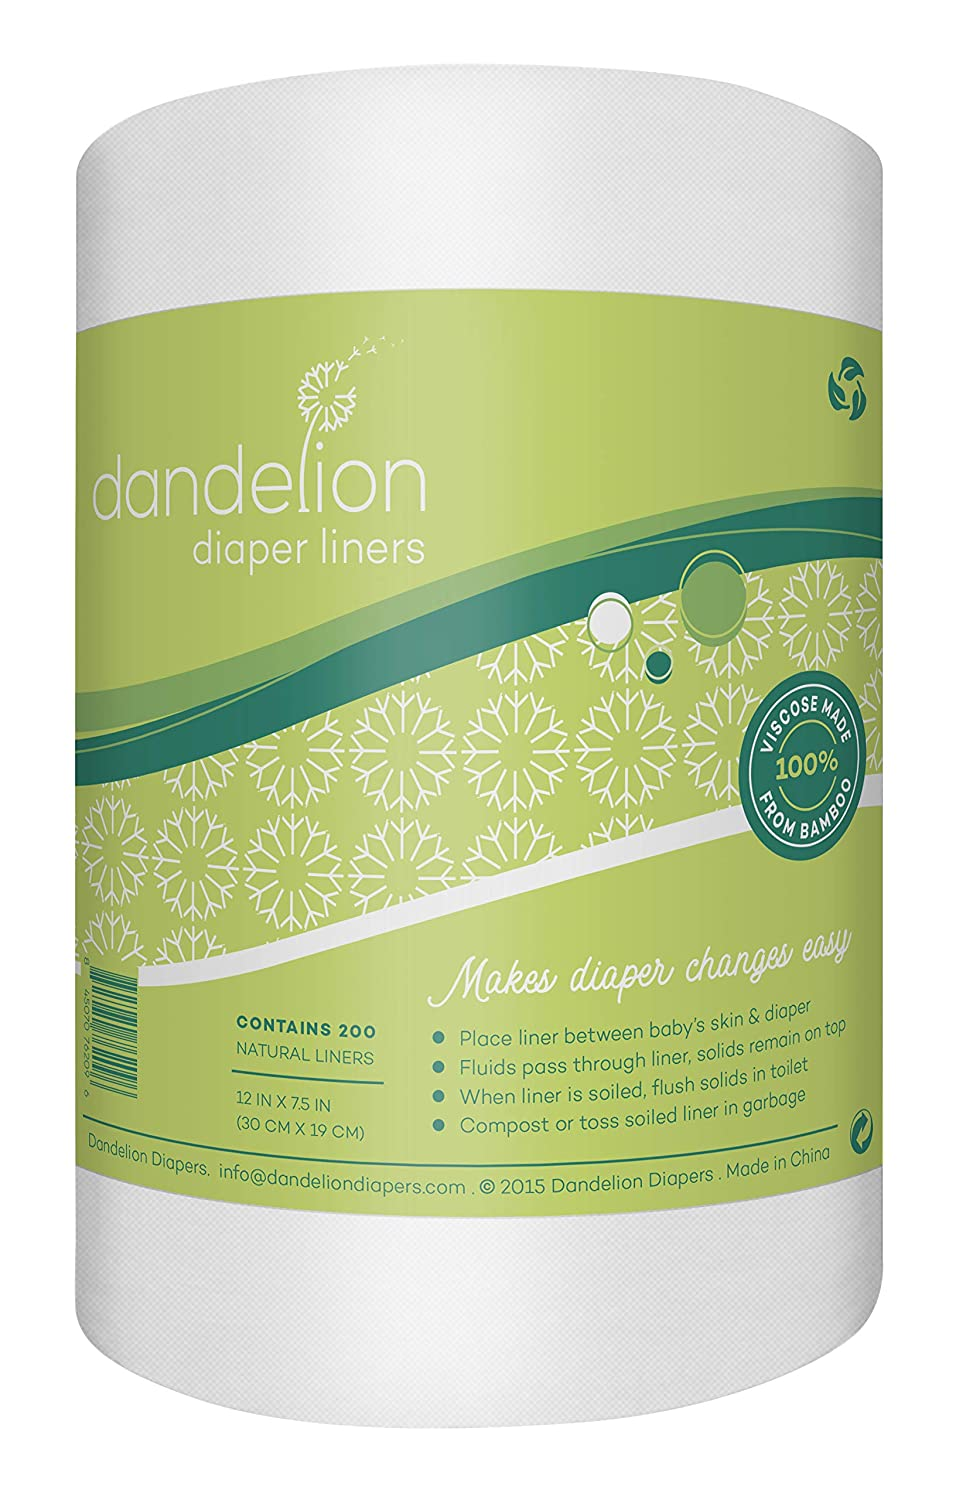 Dandelion Diapers Biodegradable and Super popular specialty store Outlet ☆ Free Shipping Lin Natural Flushable Diaper